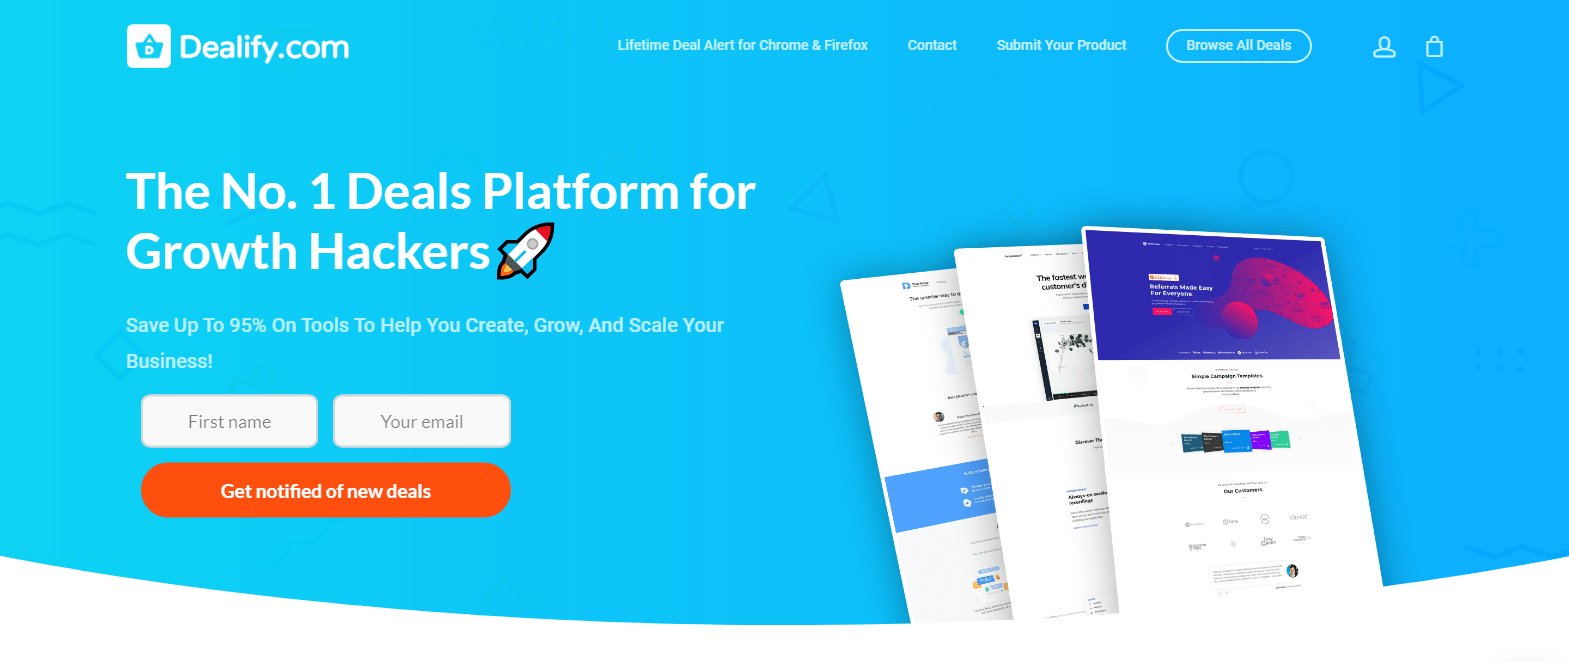 Dealify The Number One Lifetime Deals Platform for Growth Hackers